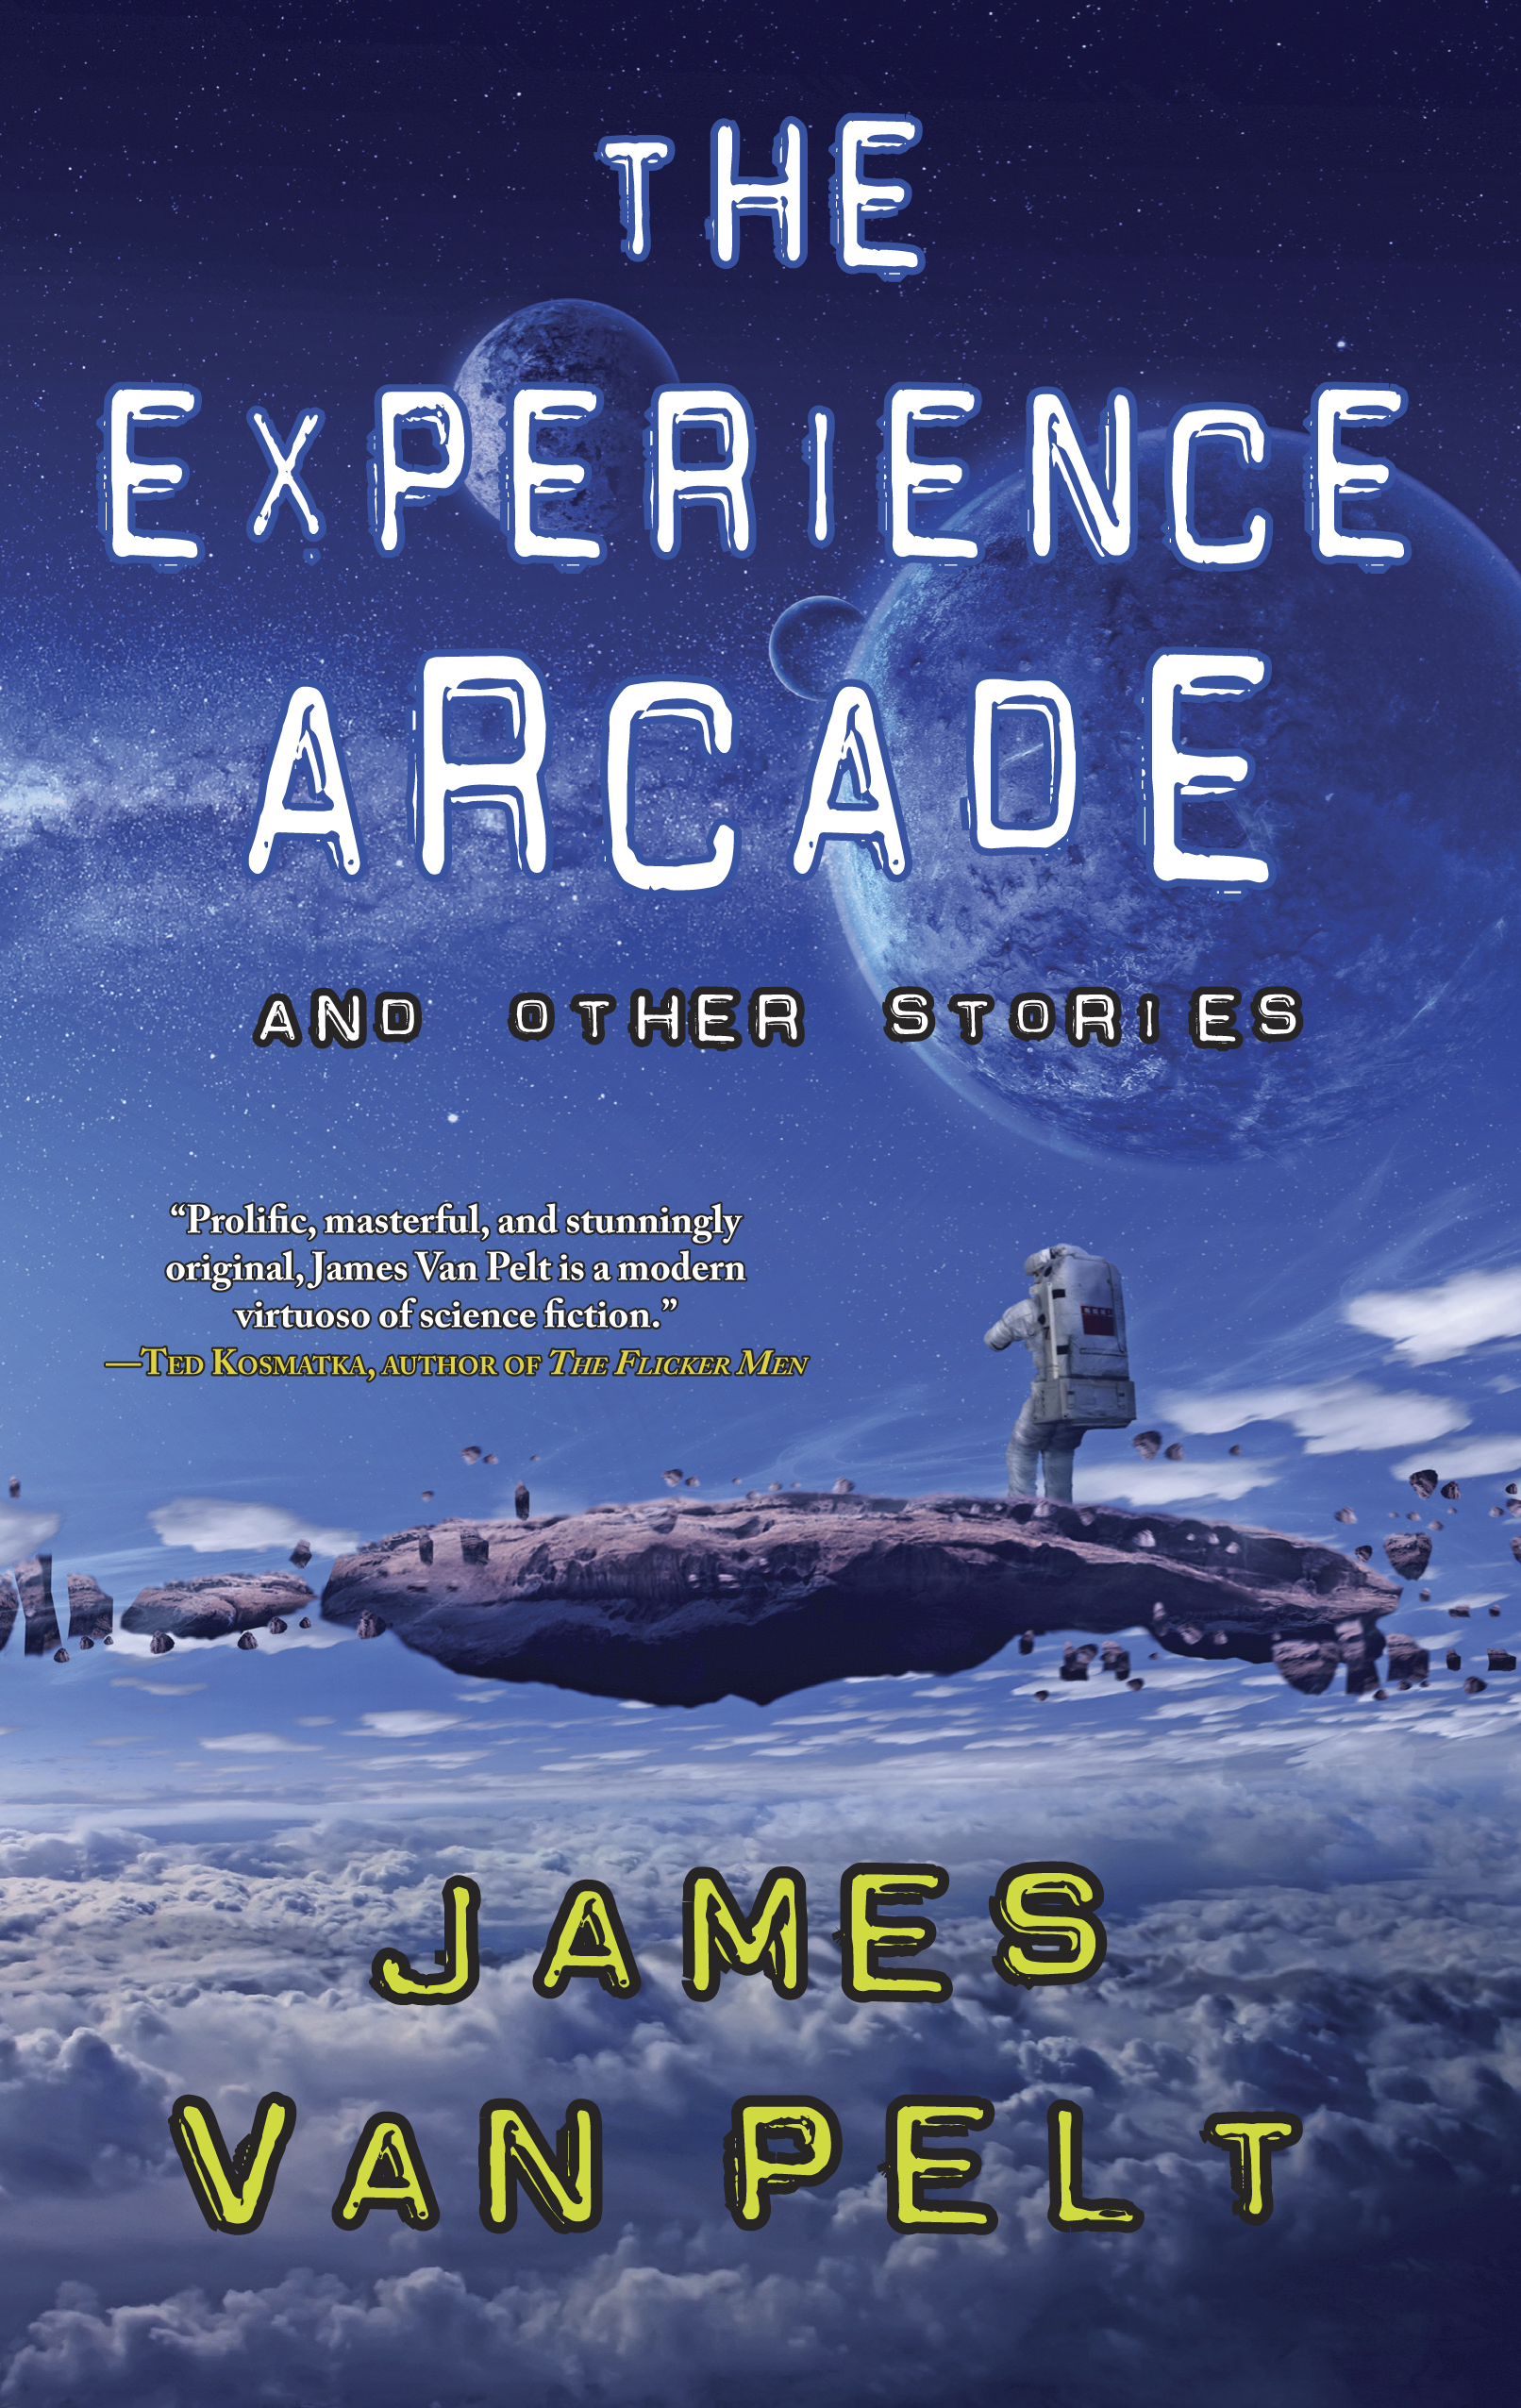 Experience arcade front cover final